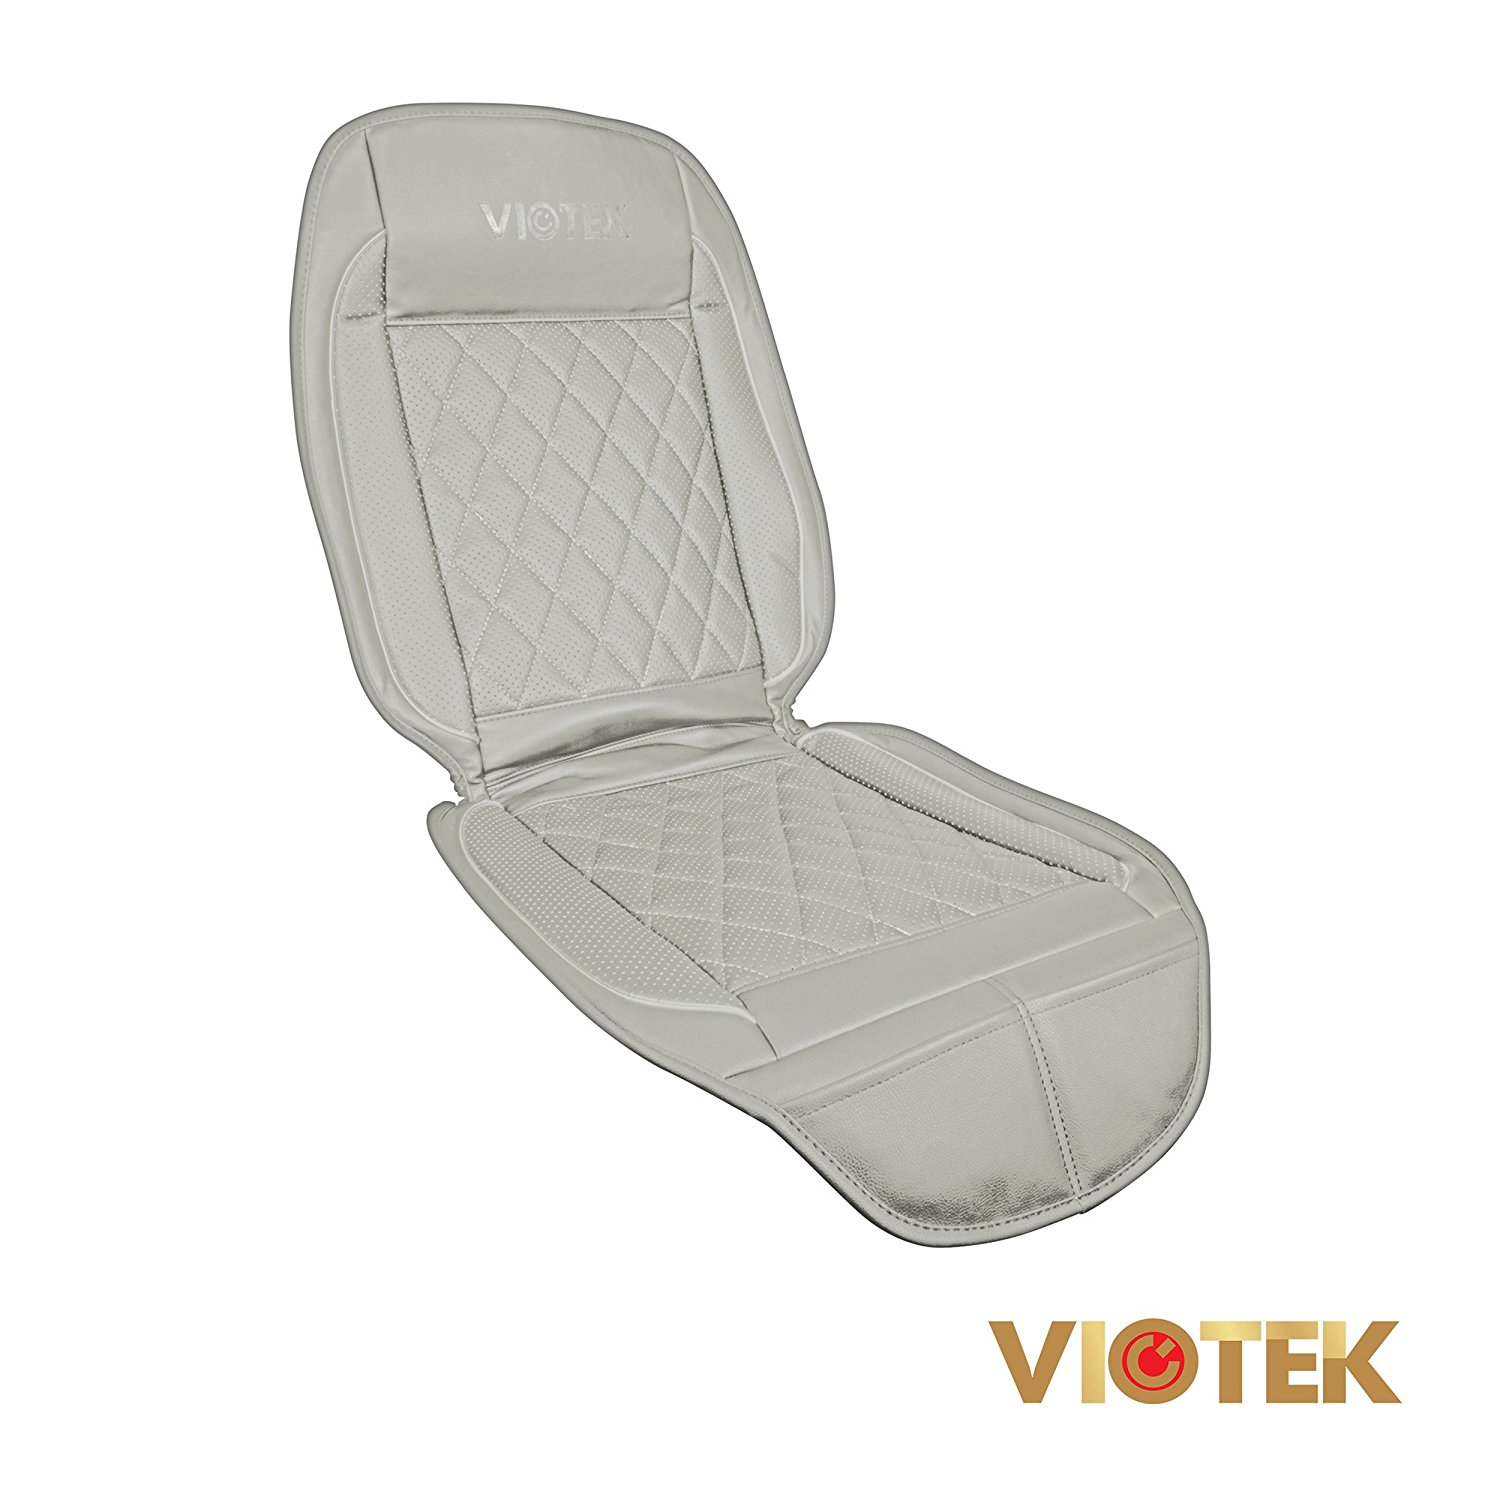 Swell Viotek Tru Comfort Temperature Control Cushion System Heat Cooling V2 Creativecarmelina Interior Chair Design Creativecarmelinacom